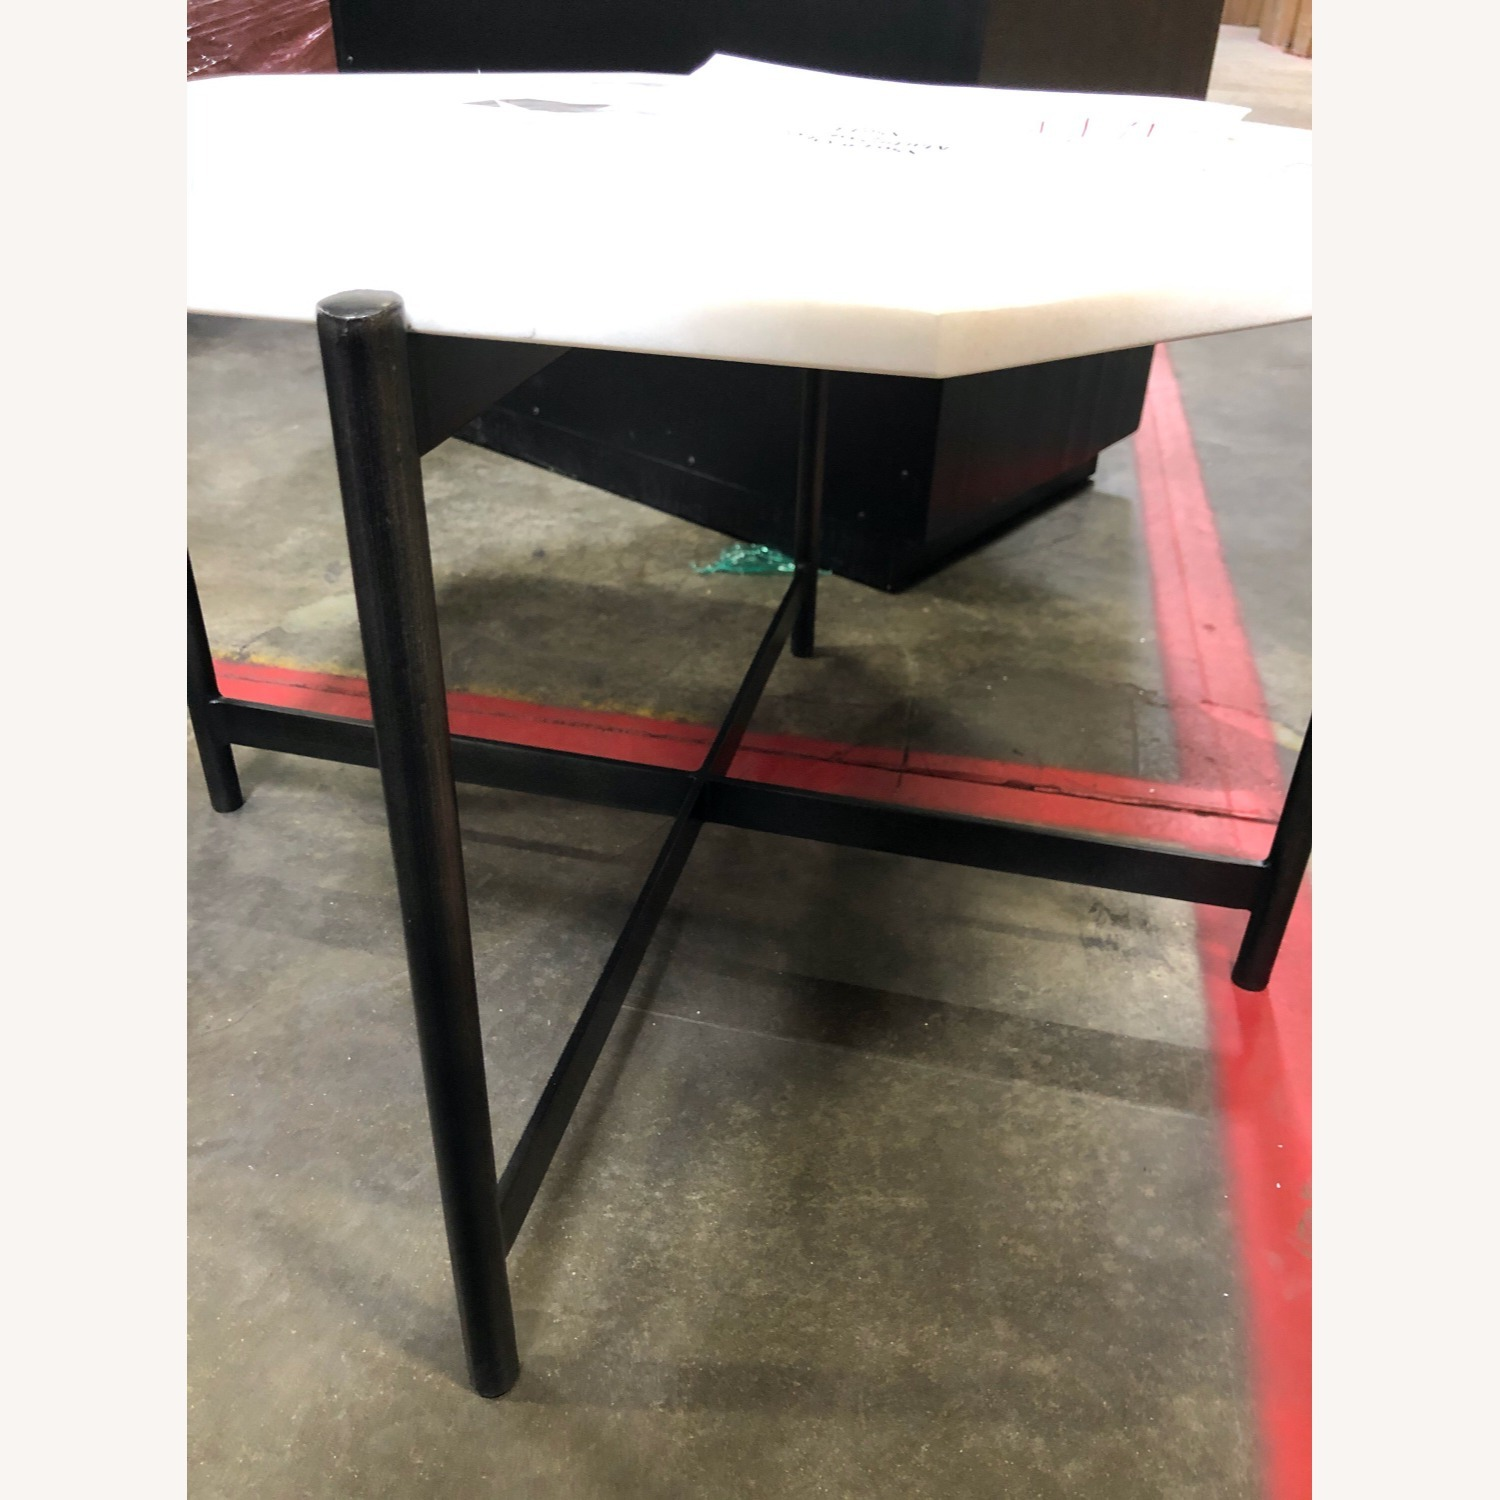 Four Hands Martin Coffee Table - image-1